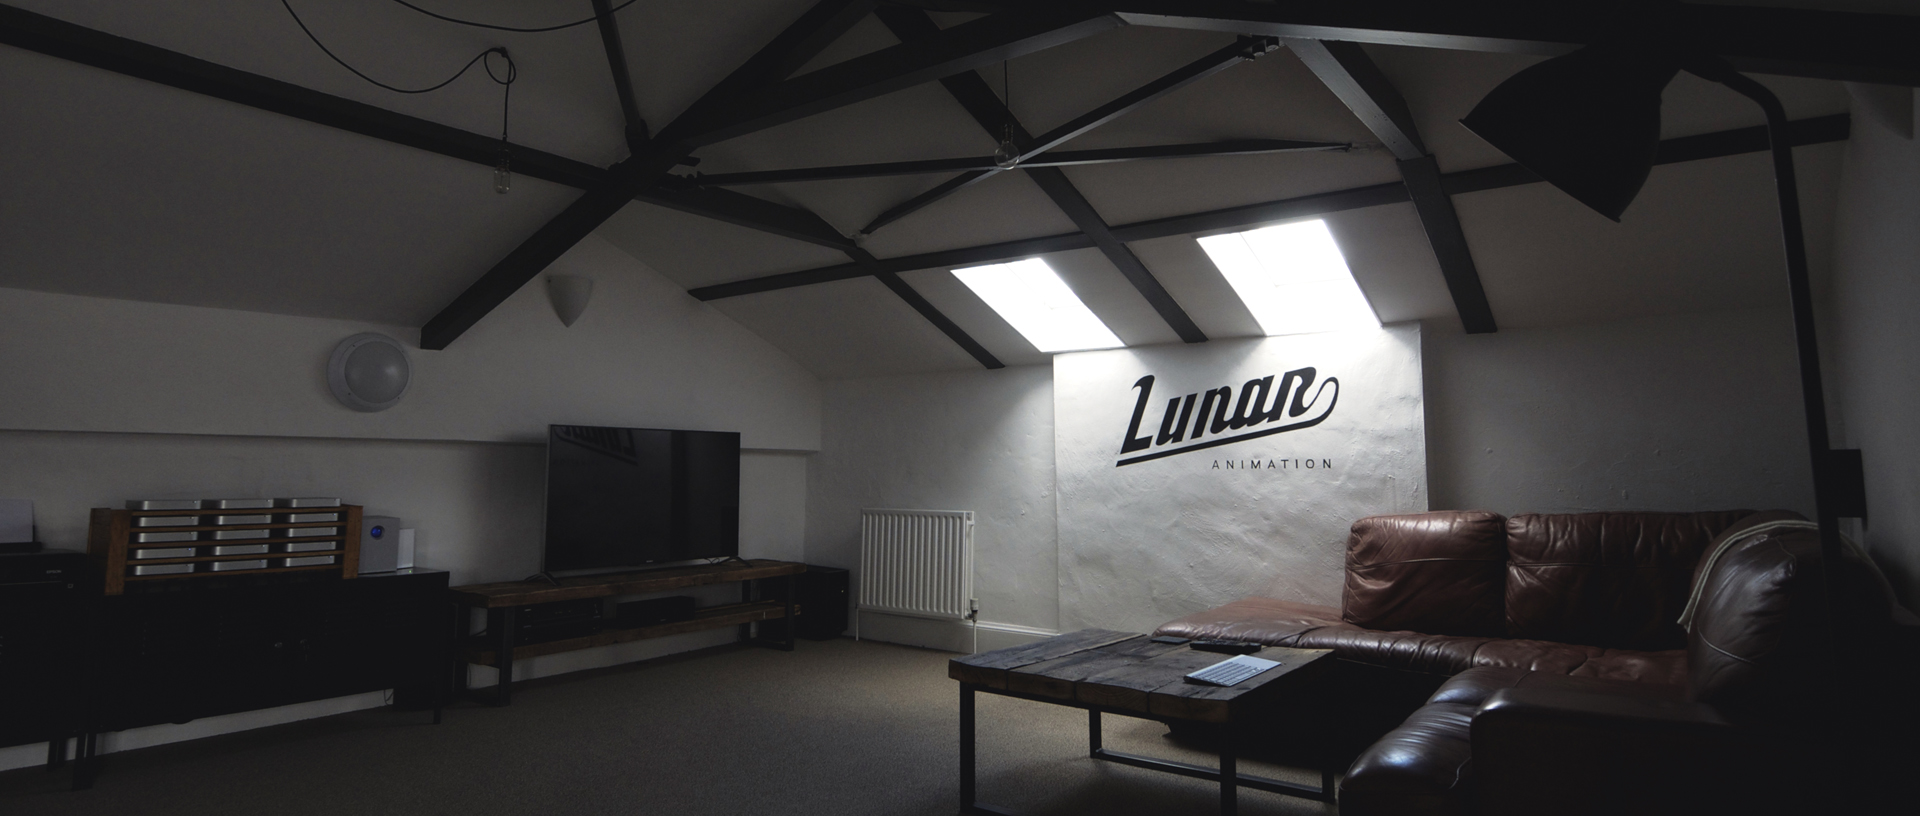 Lunar Animation Office and Logo